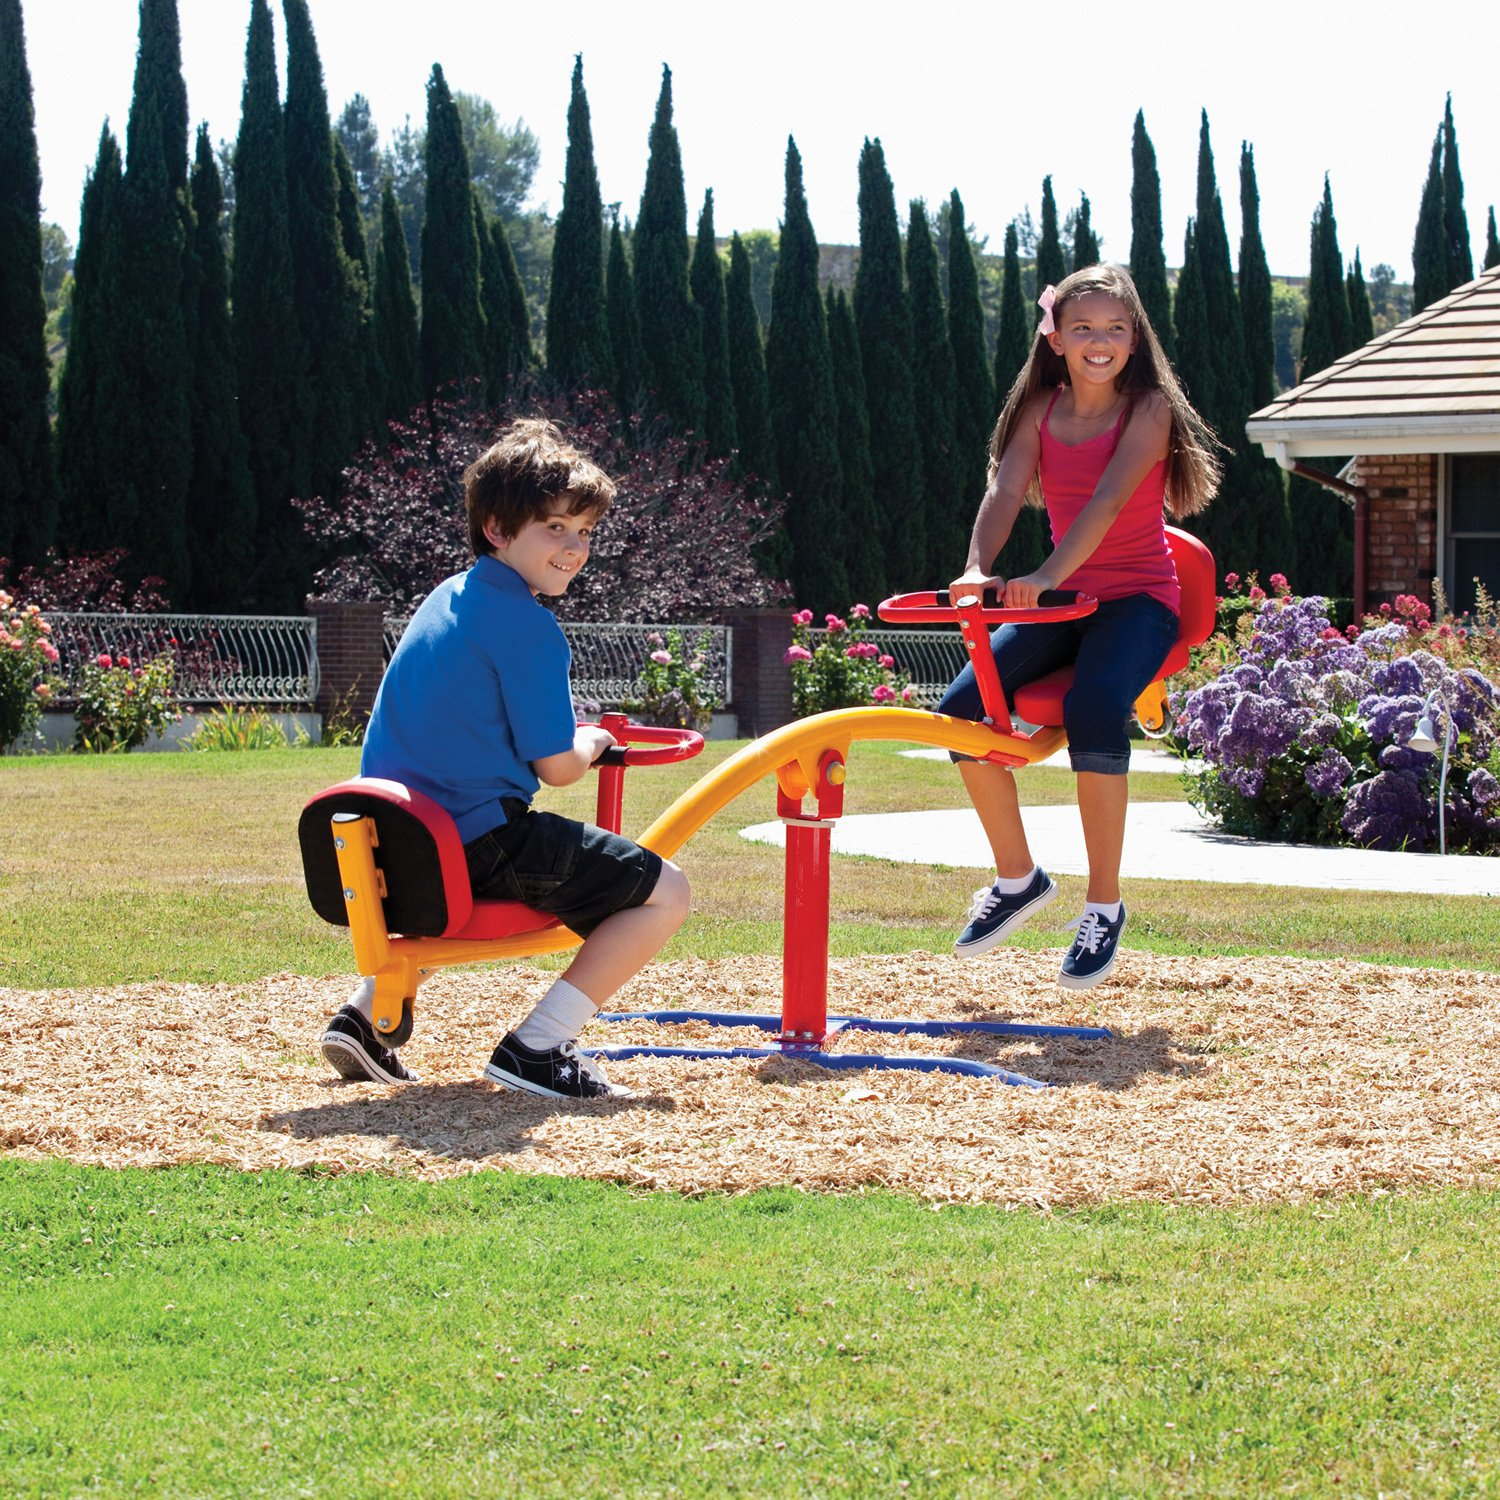 Impex Durable Teeter Go Round for Ages 3-13 Years Old by Impex